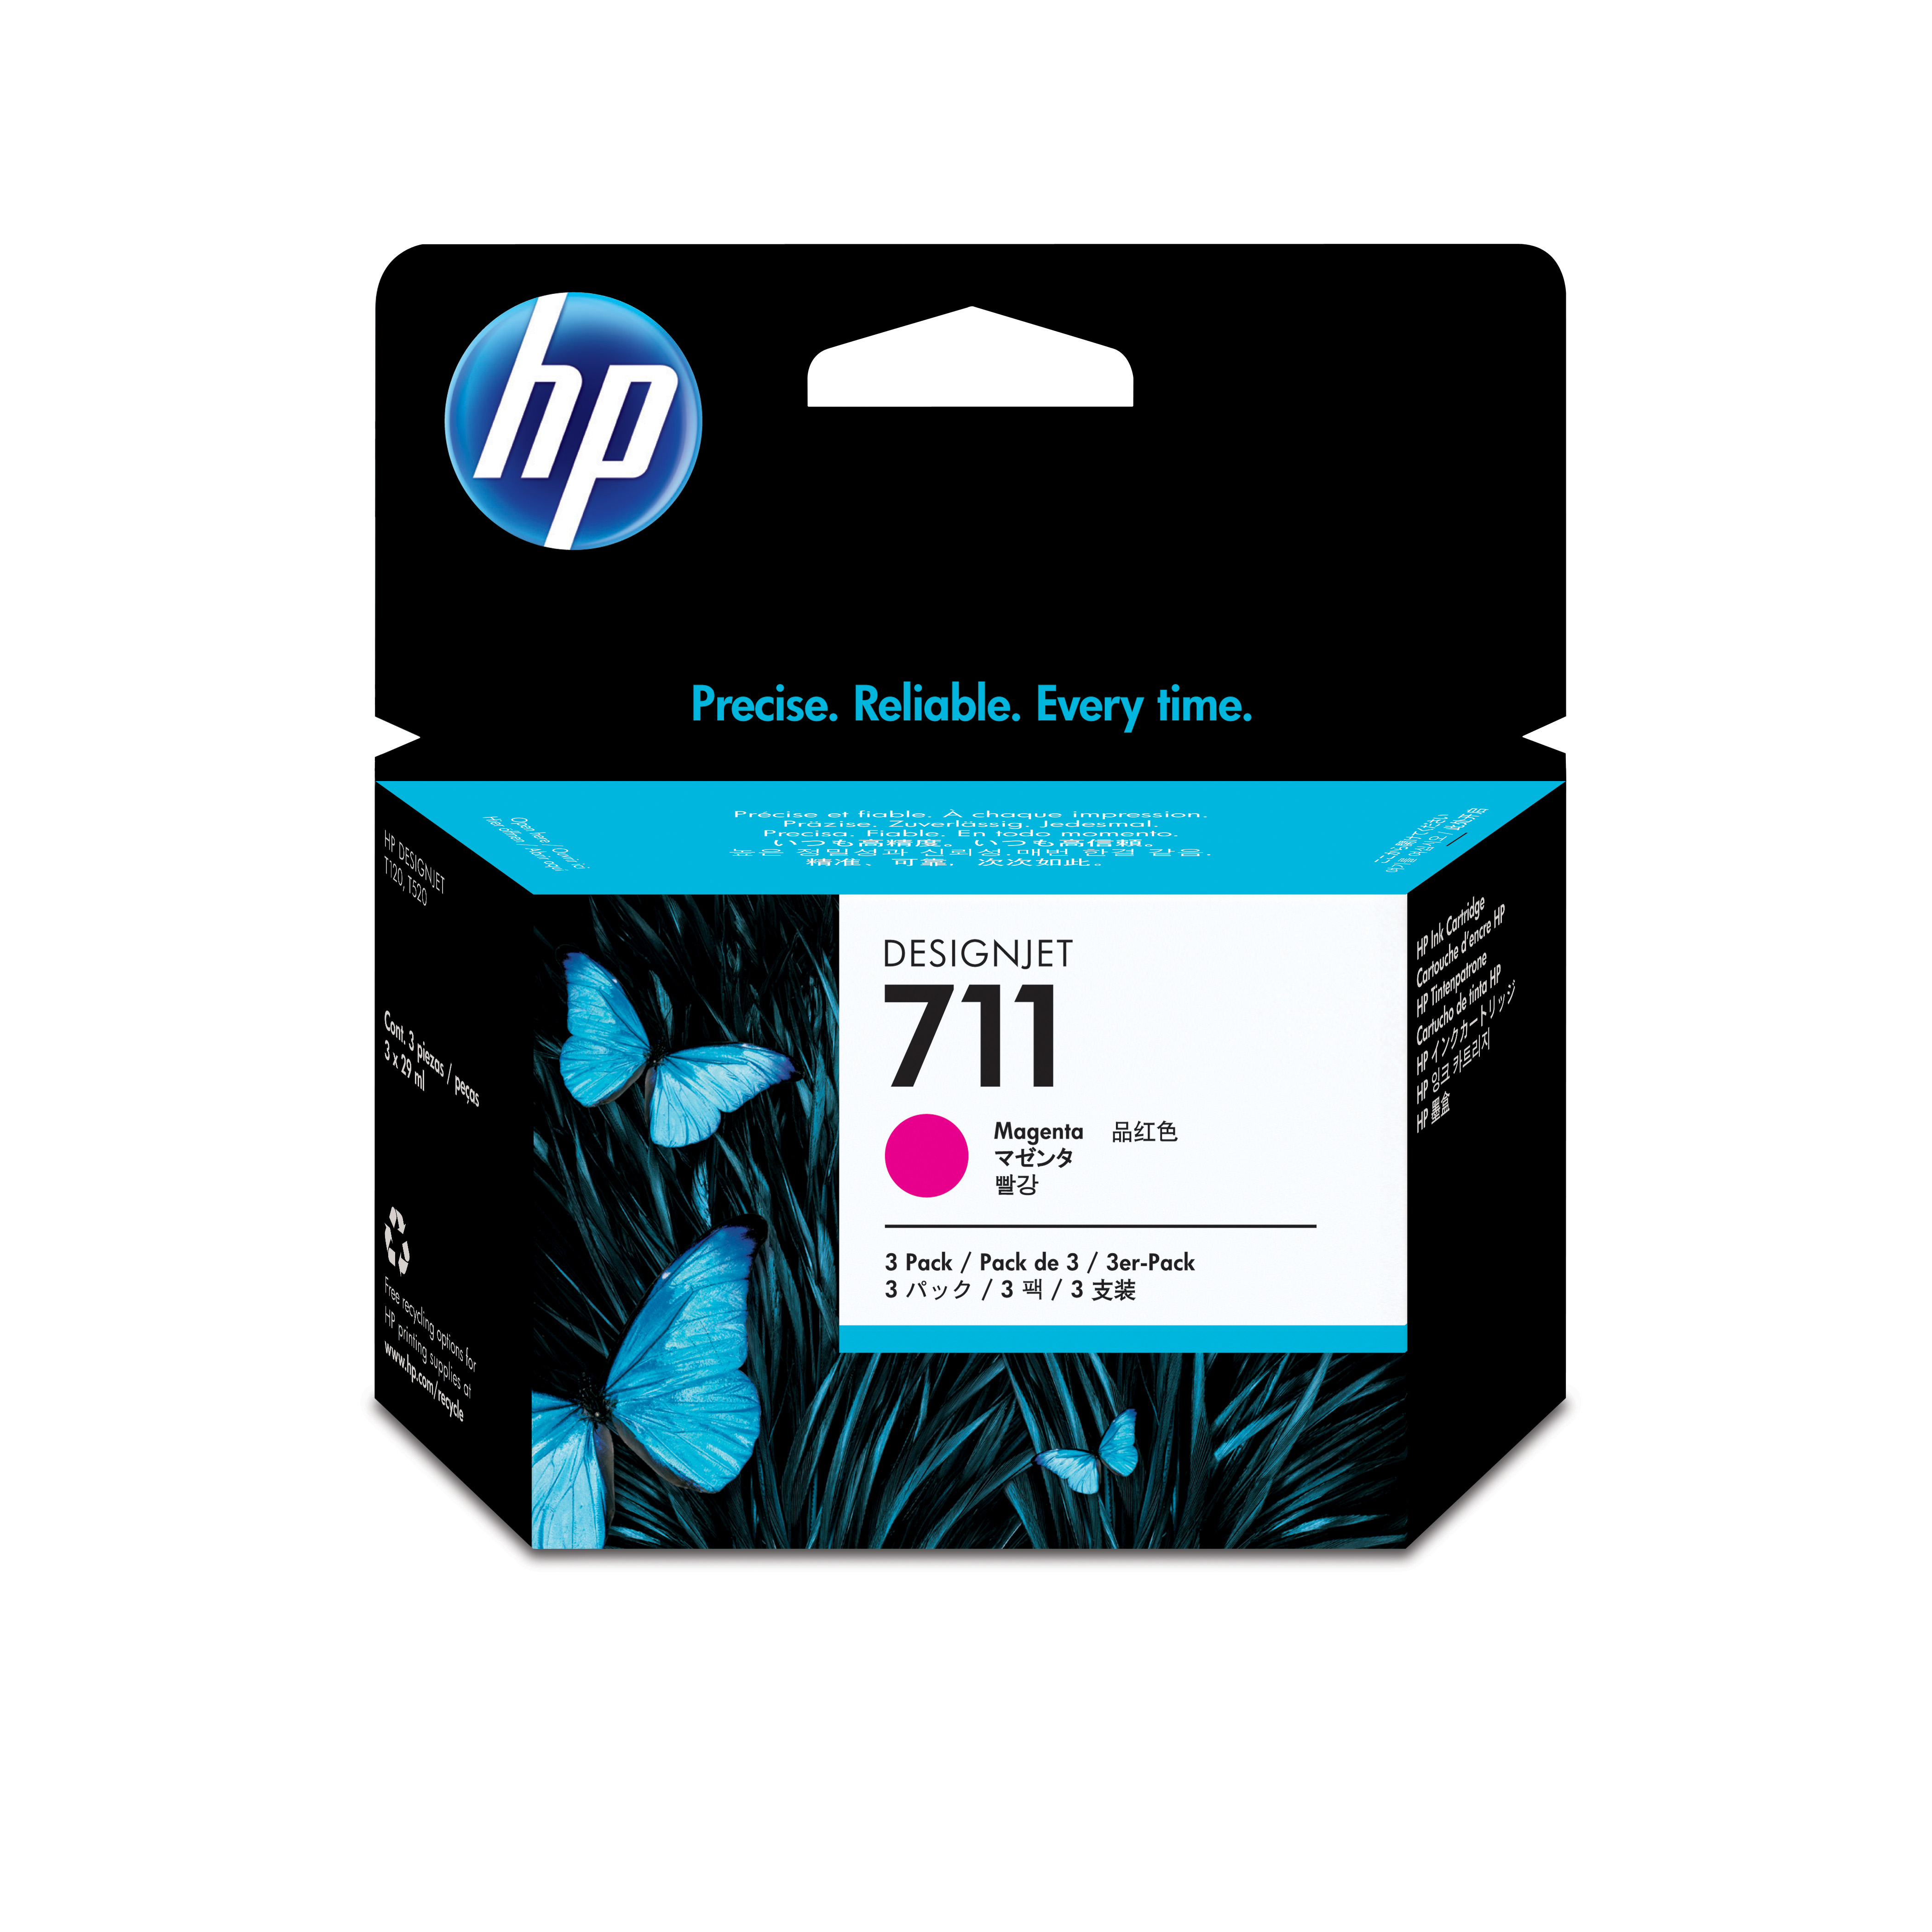 HP 711 Magenta Ink Cartridges CZ135A, 3/Pack